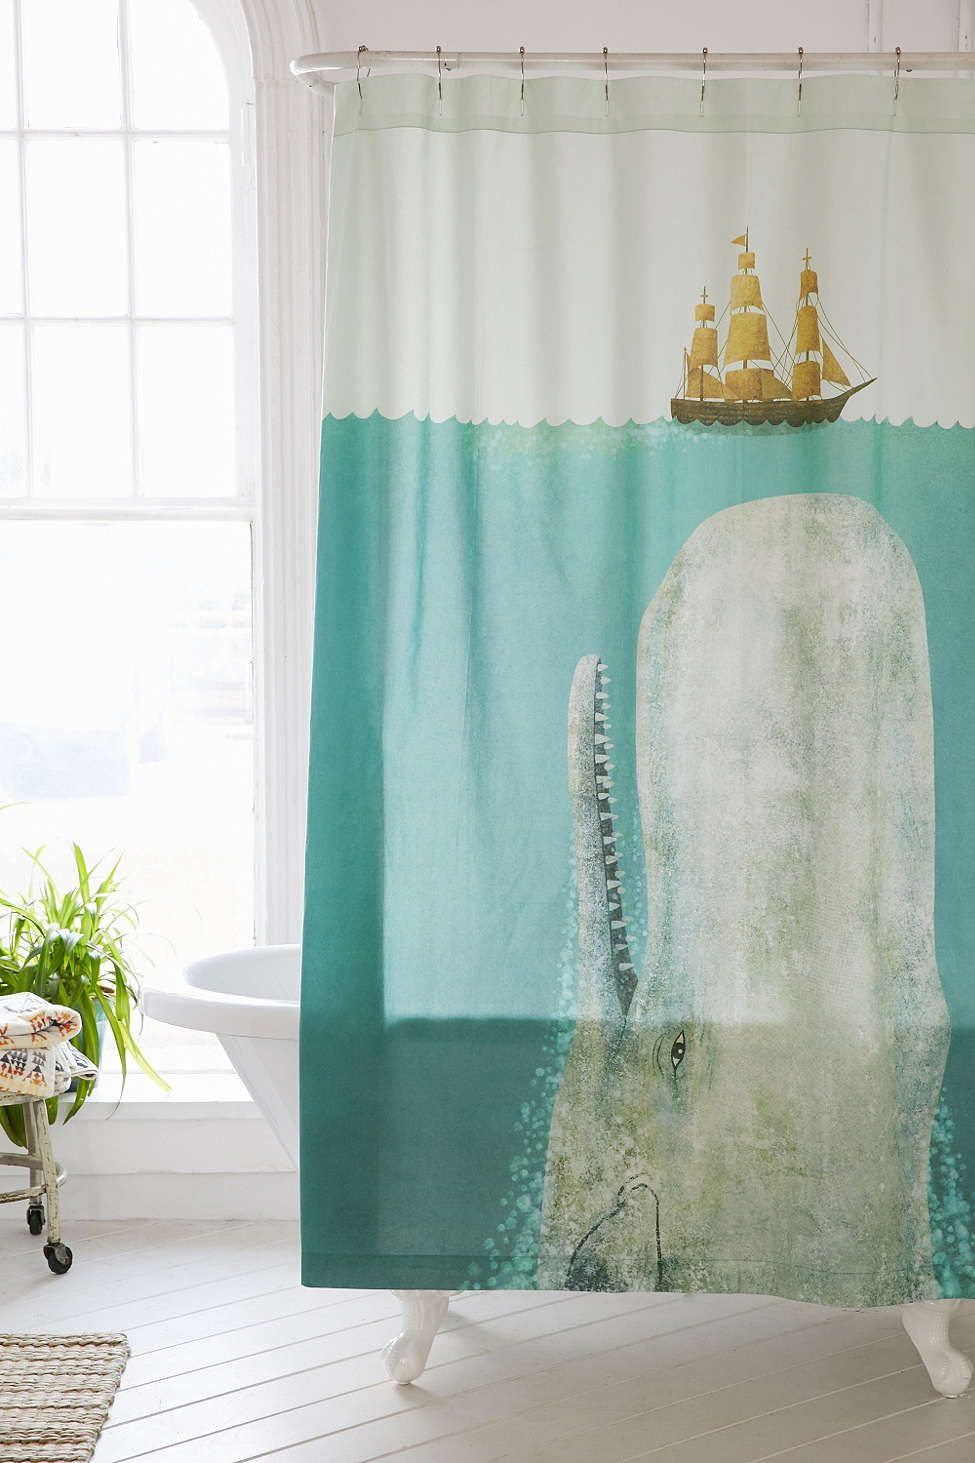 Urban Outfitters Whale Shower Curtain September 2017